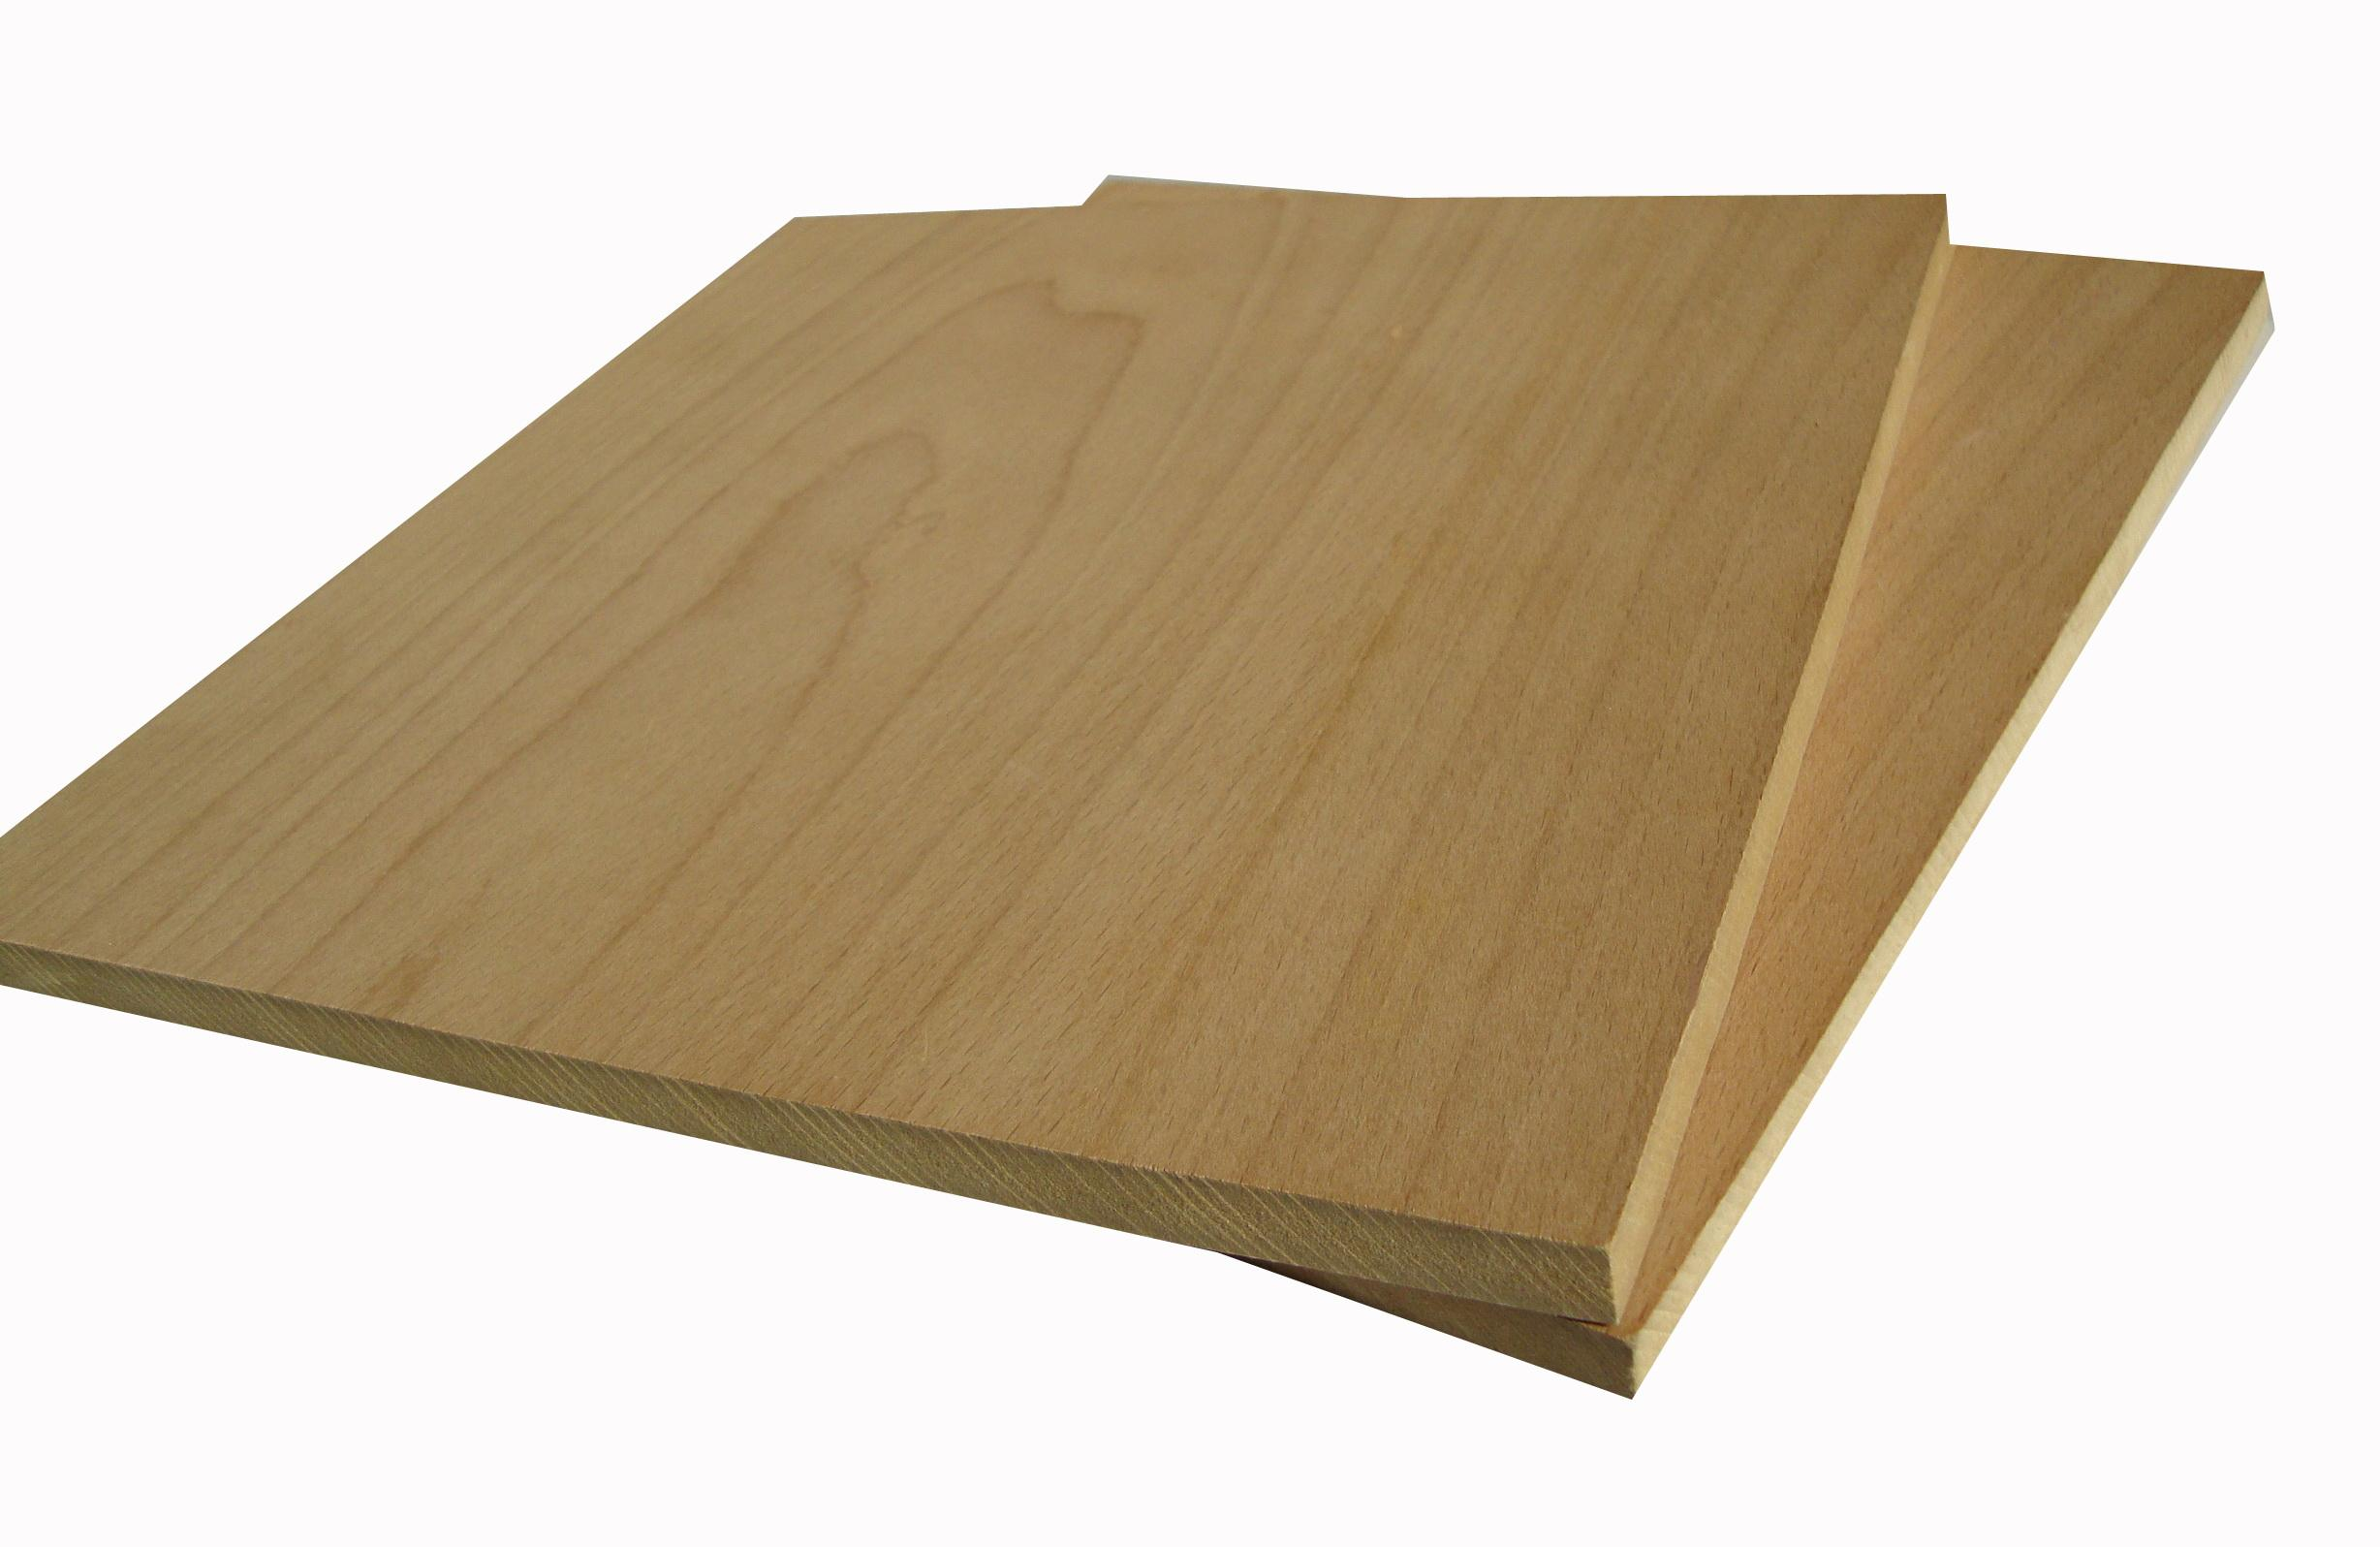 Medium Density Fiberboard Mdf ~ Veneered mdf